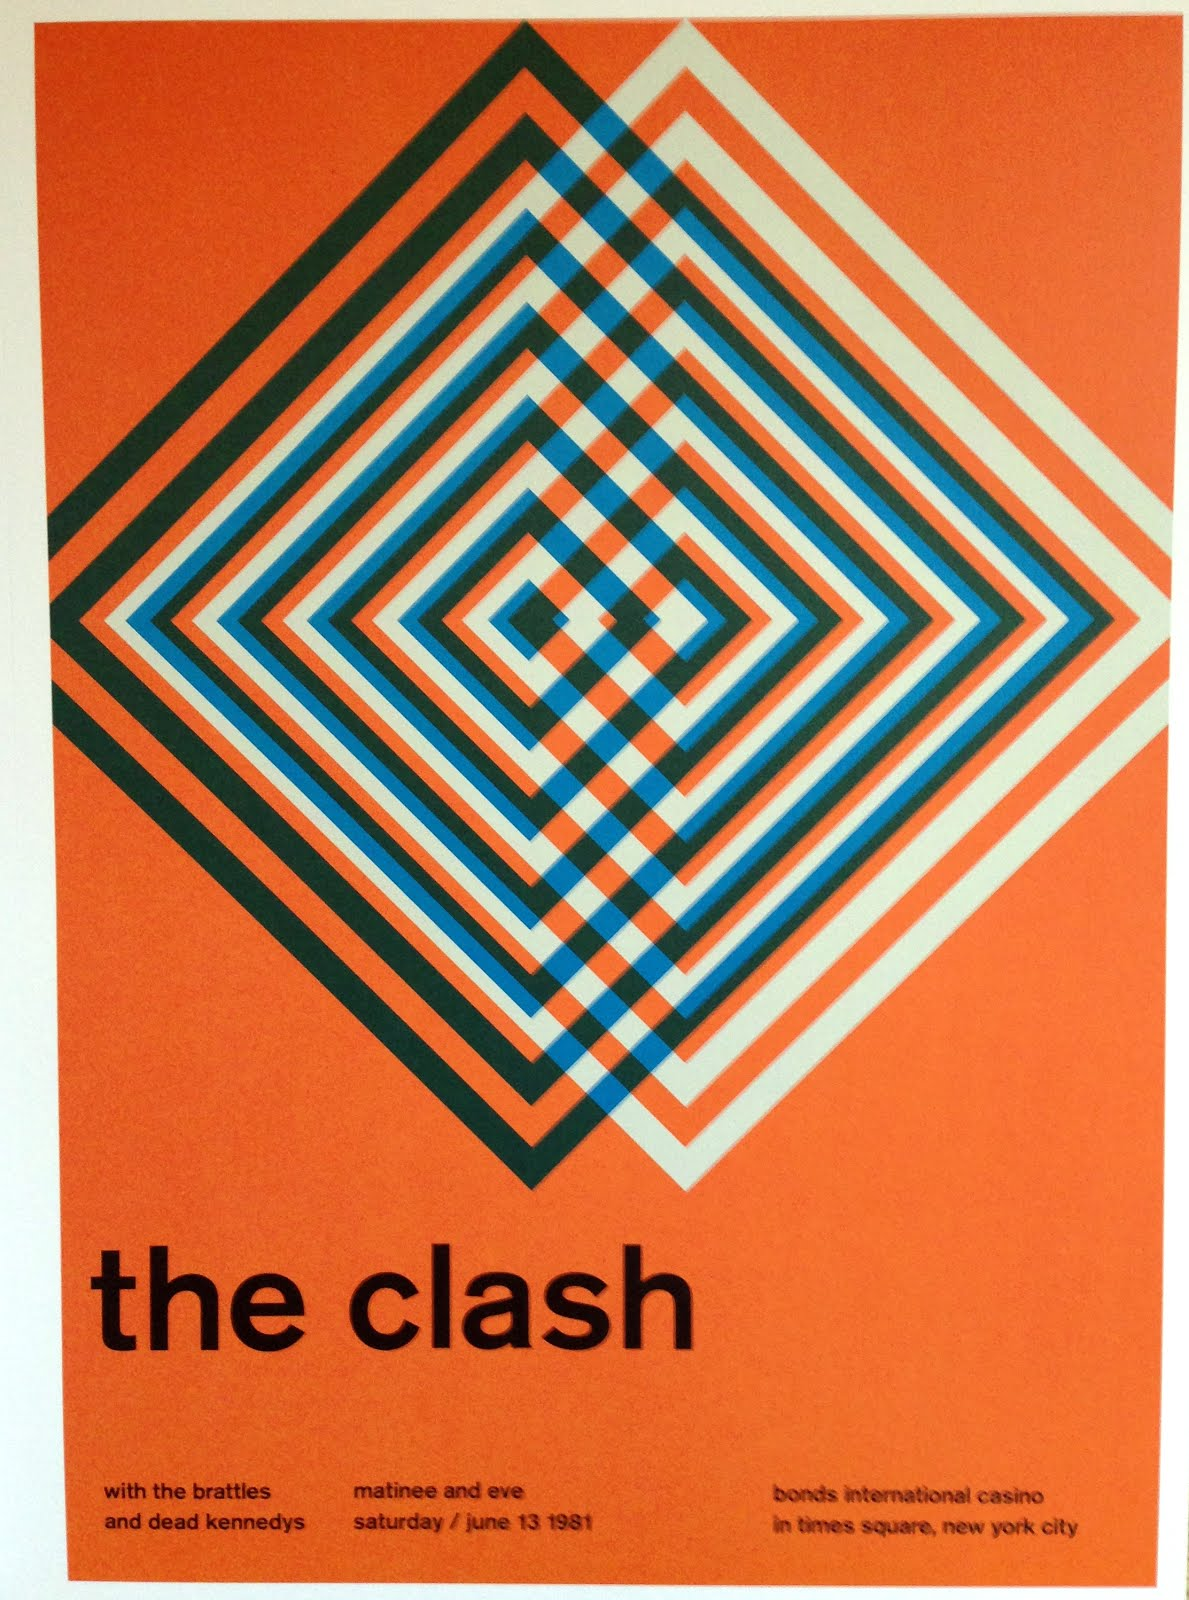 Swissted Vintage Rock Posters Remixed And Reimagined